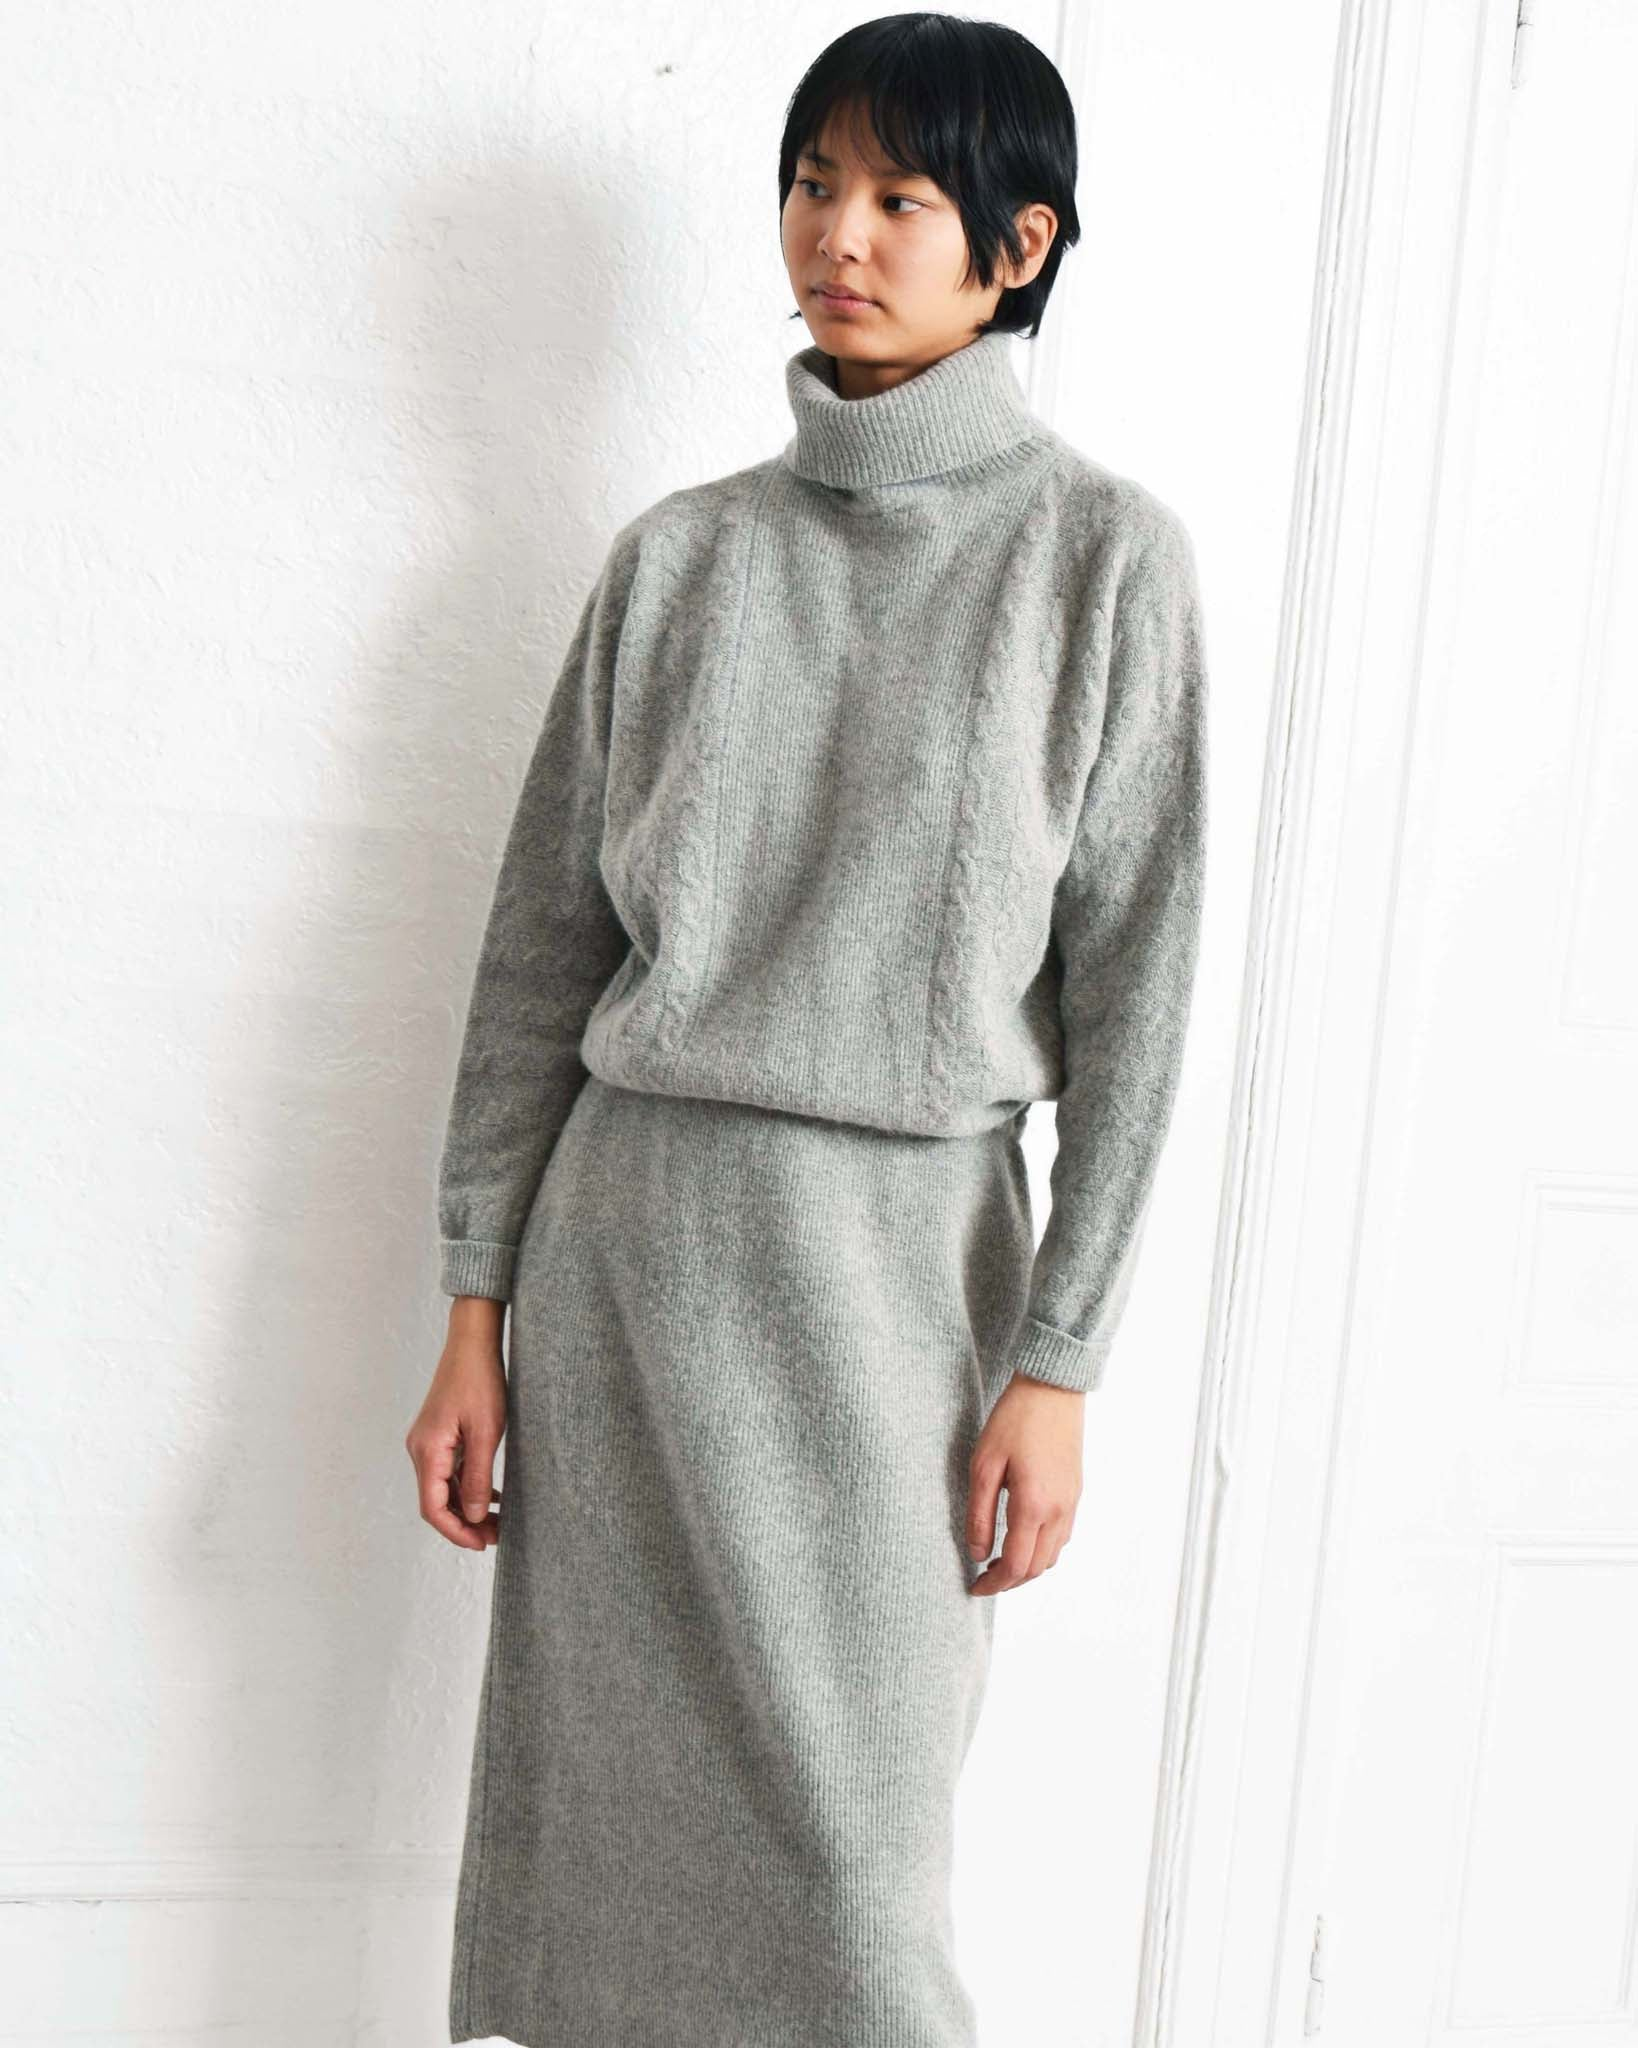 Vintage Lambswool Sweater Dress